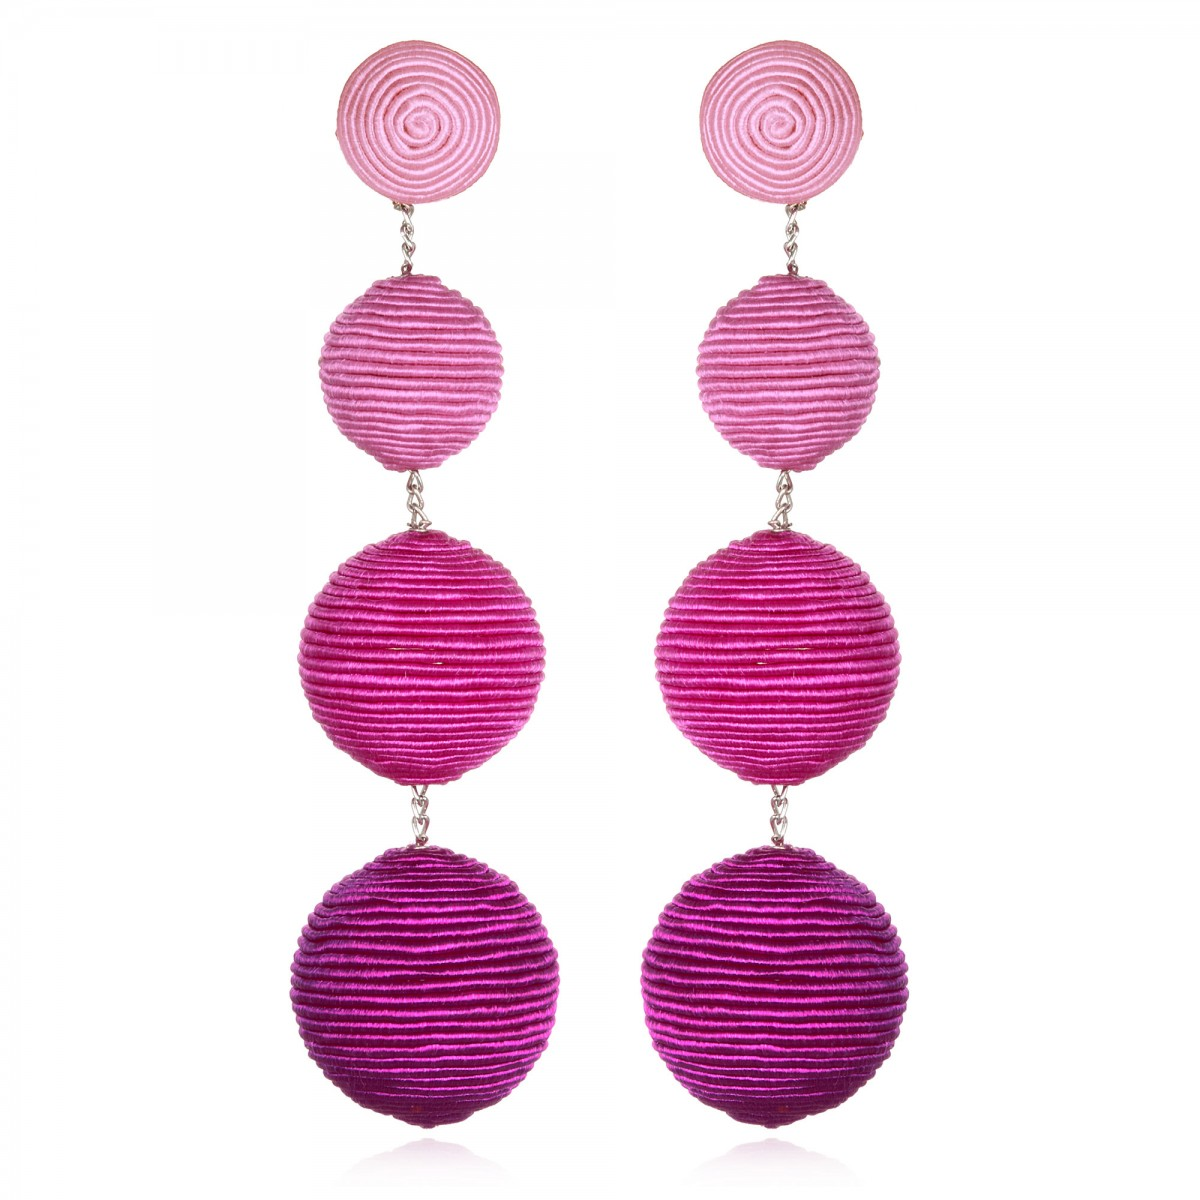 Fuchsia Ombre Gumball Earrings  by SUZANNA DAI